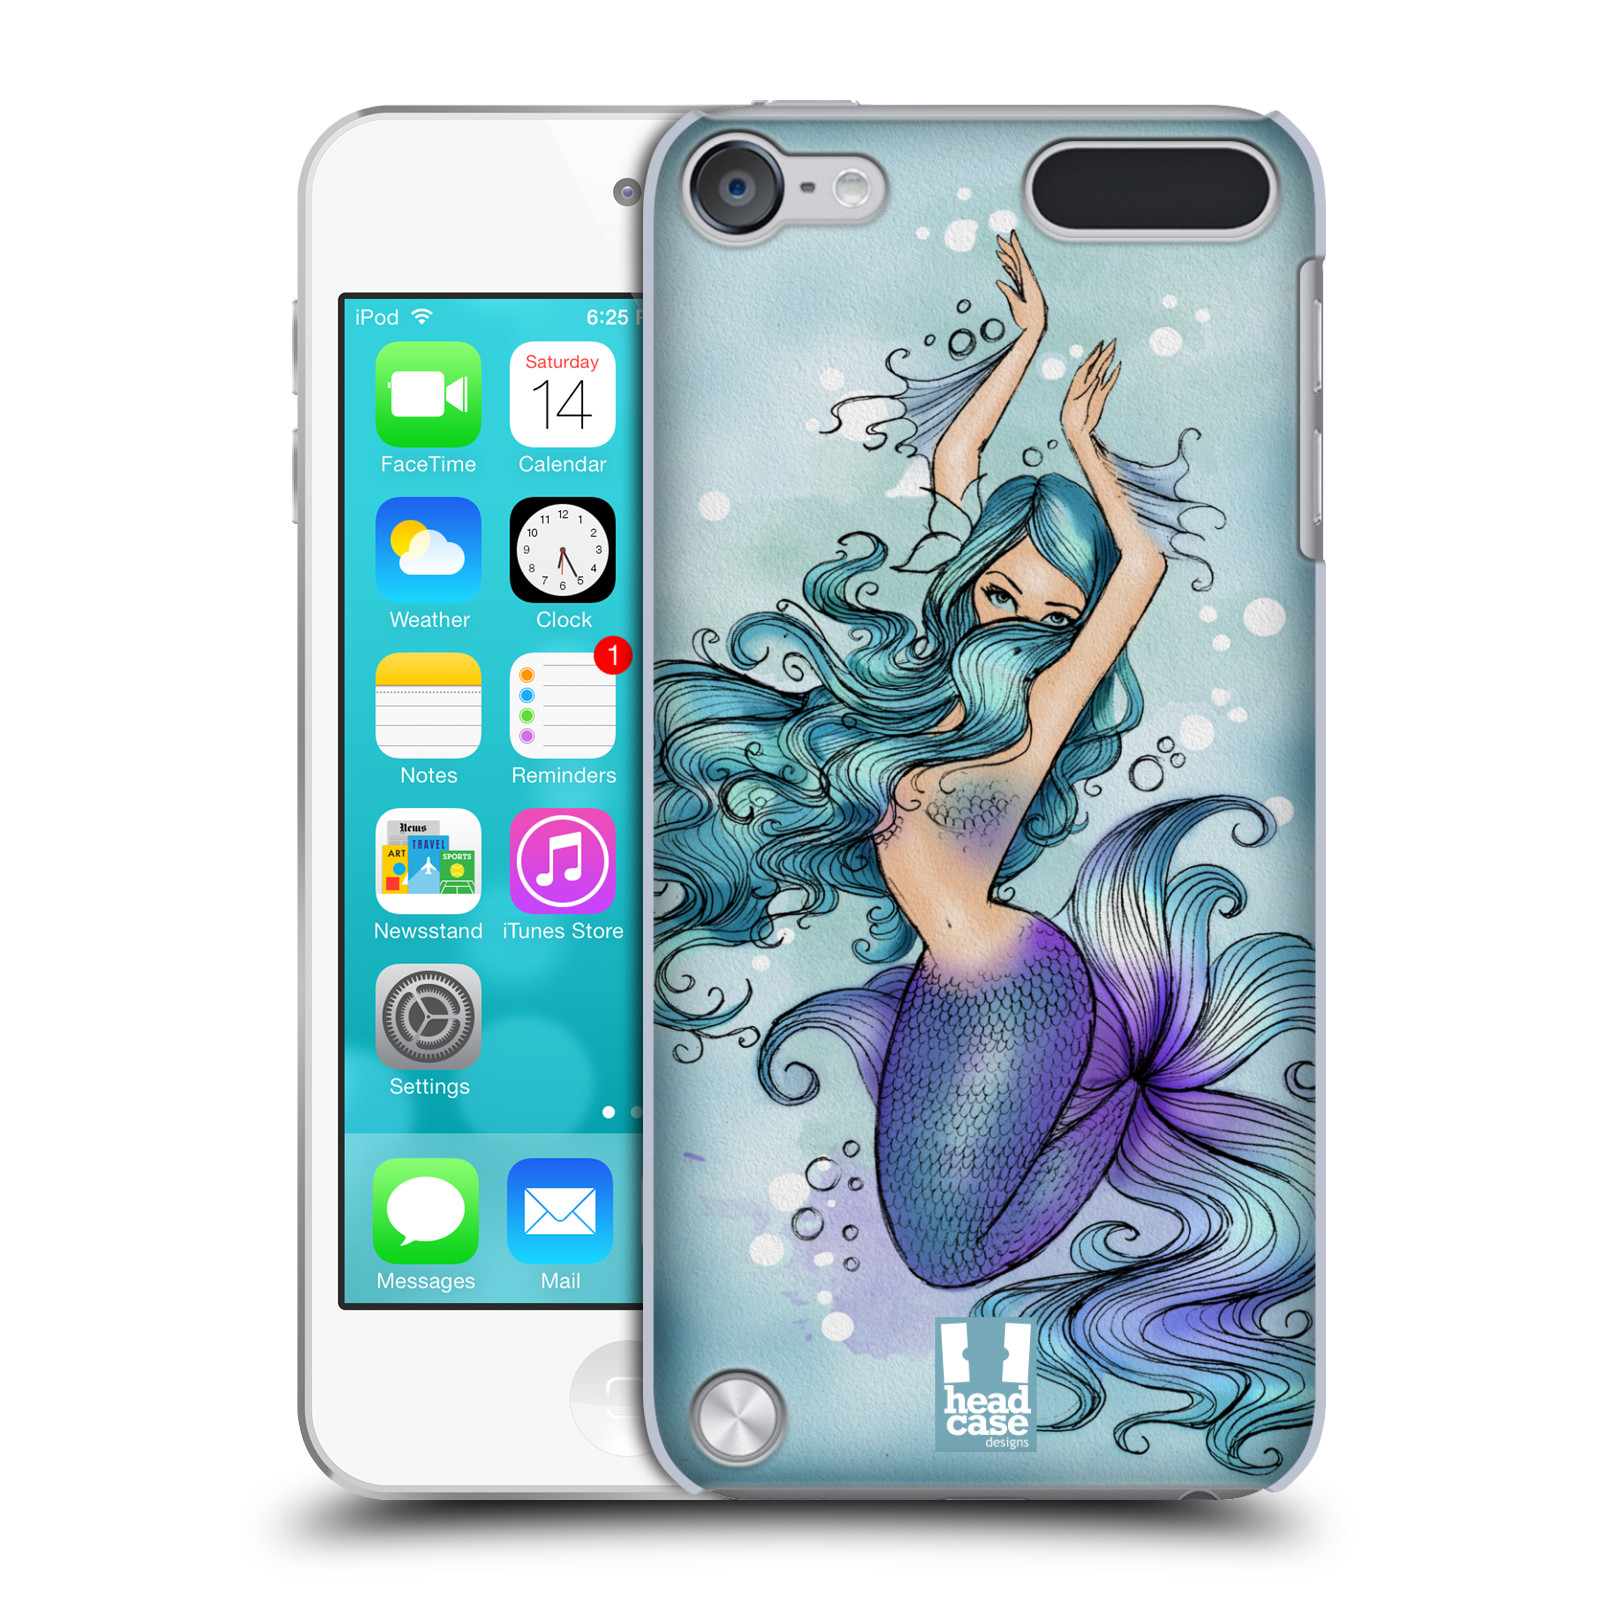 HEAD CASE DESIGNS MERMAIDS CASE COVER FOR APPLE iPOD TOUCH 5G 5TH GEN